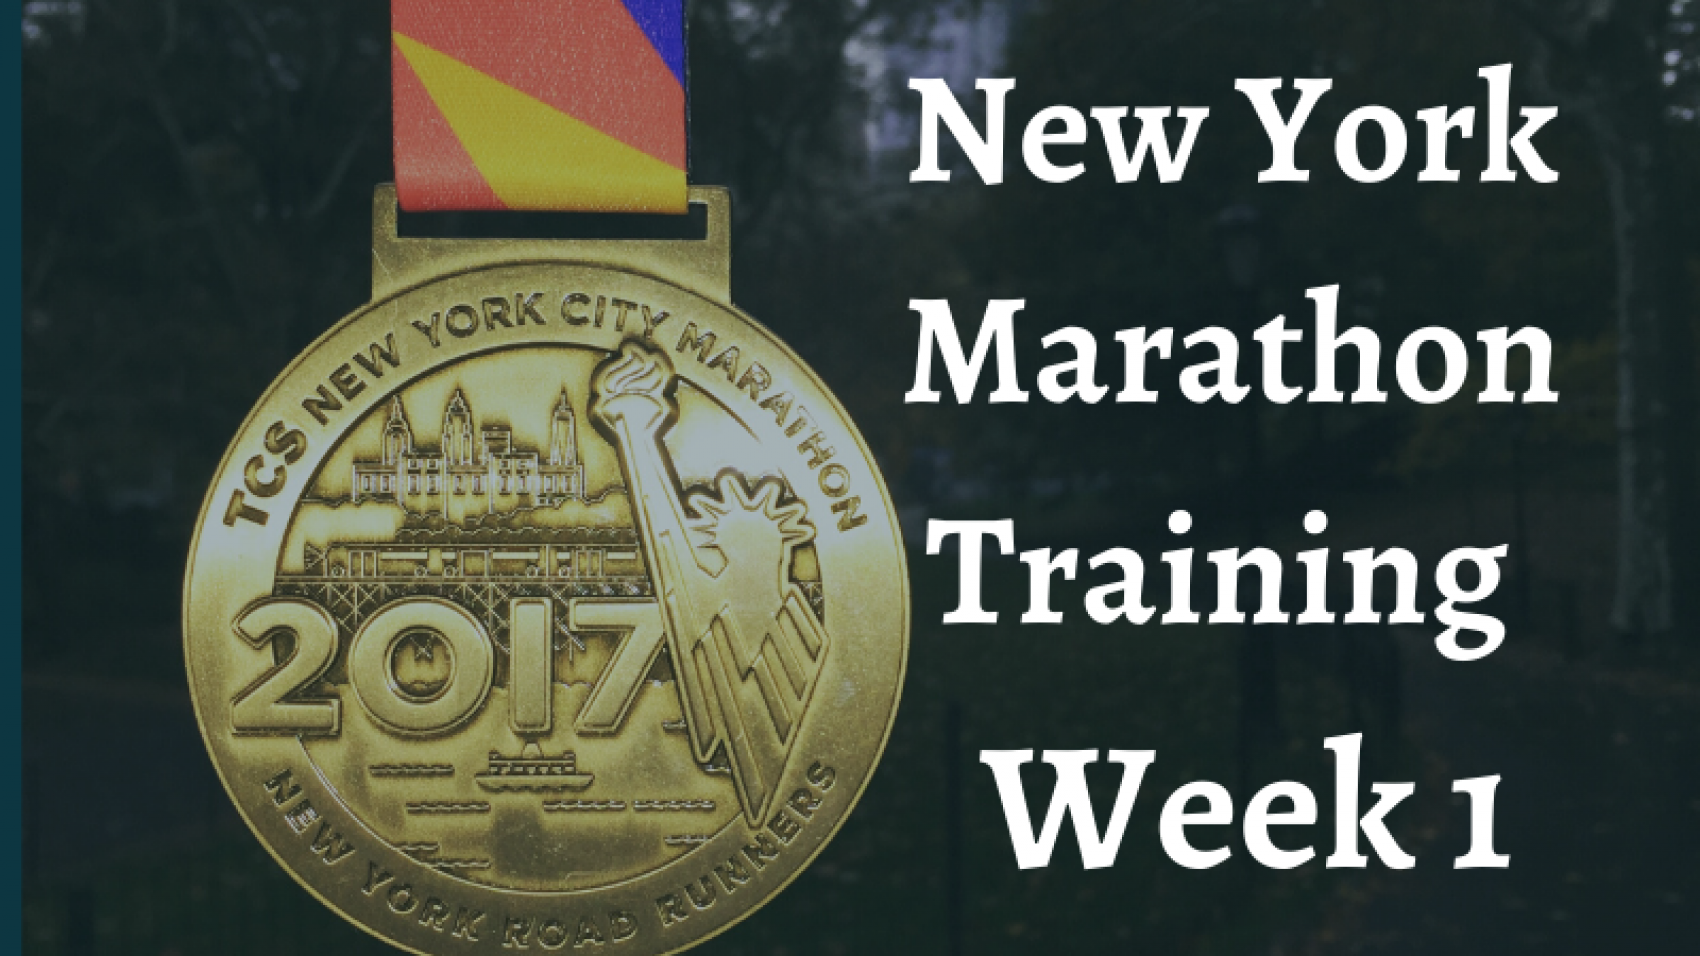 New York Marathon Week 1